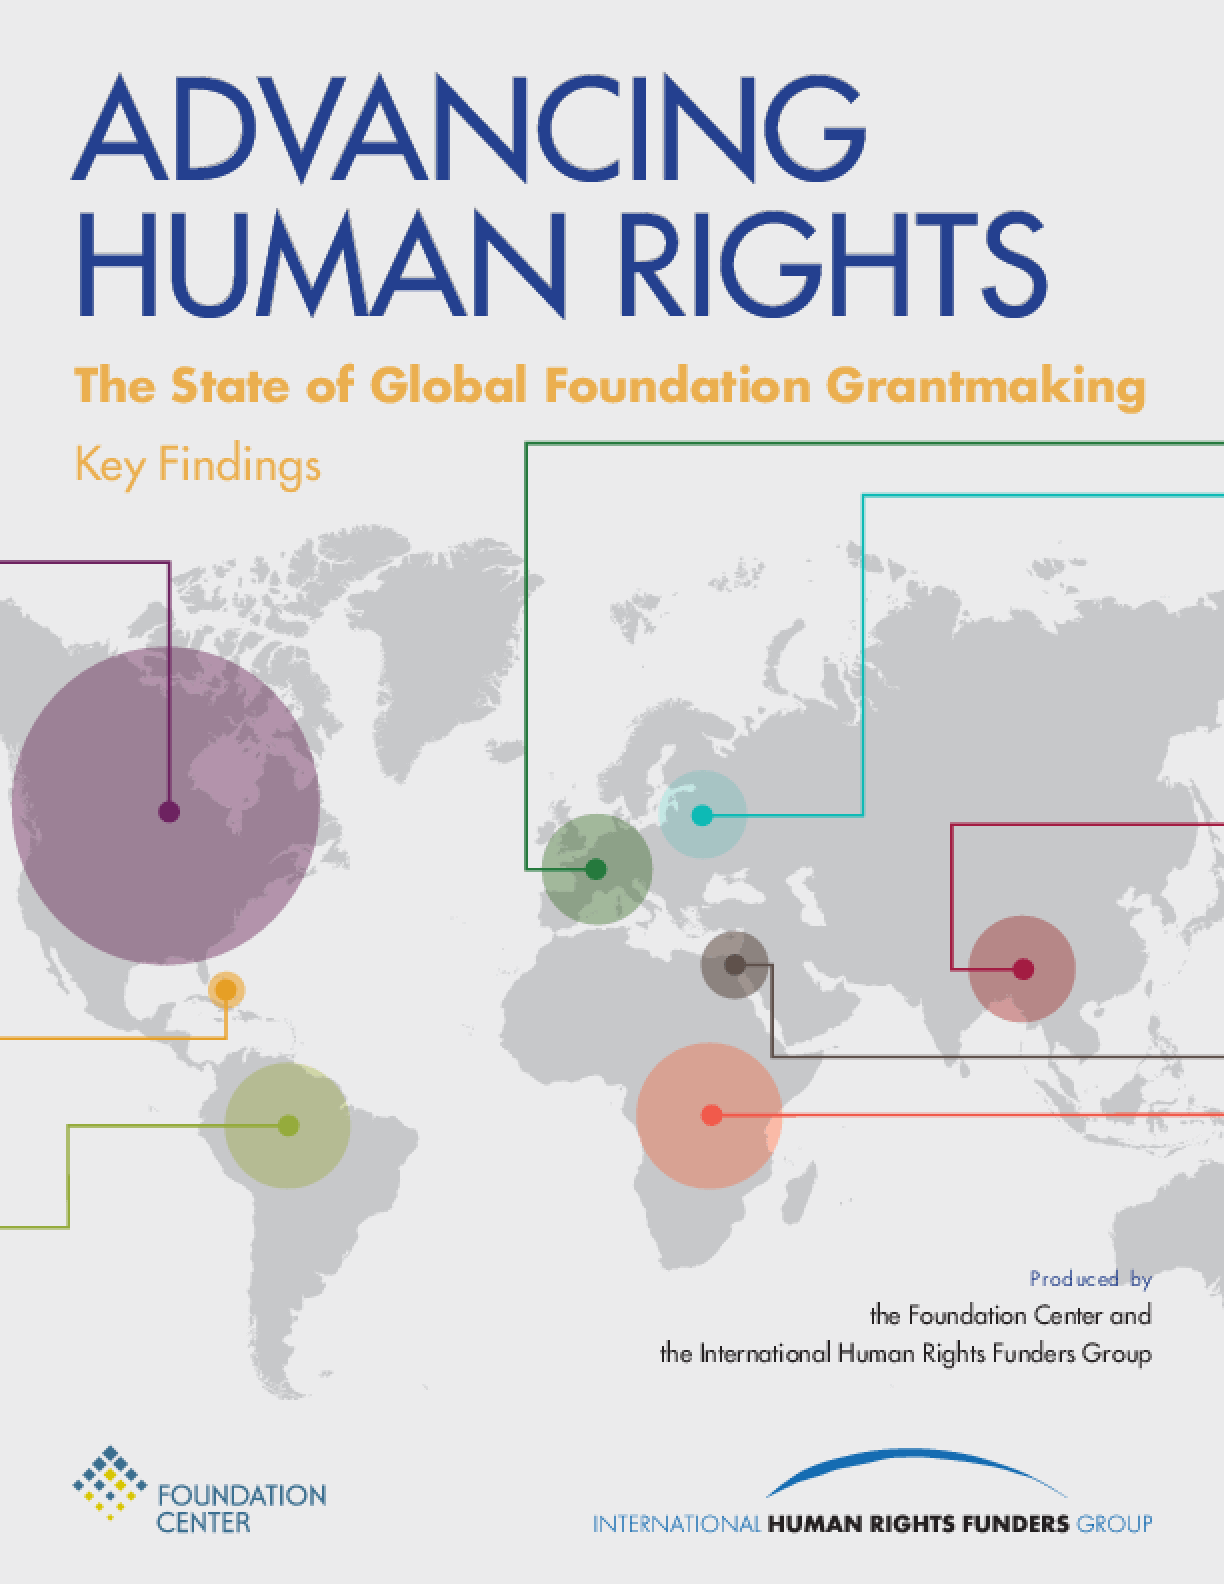 Advancing Human Rights: The State of Global Foundation Grantmaking - Key Findings